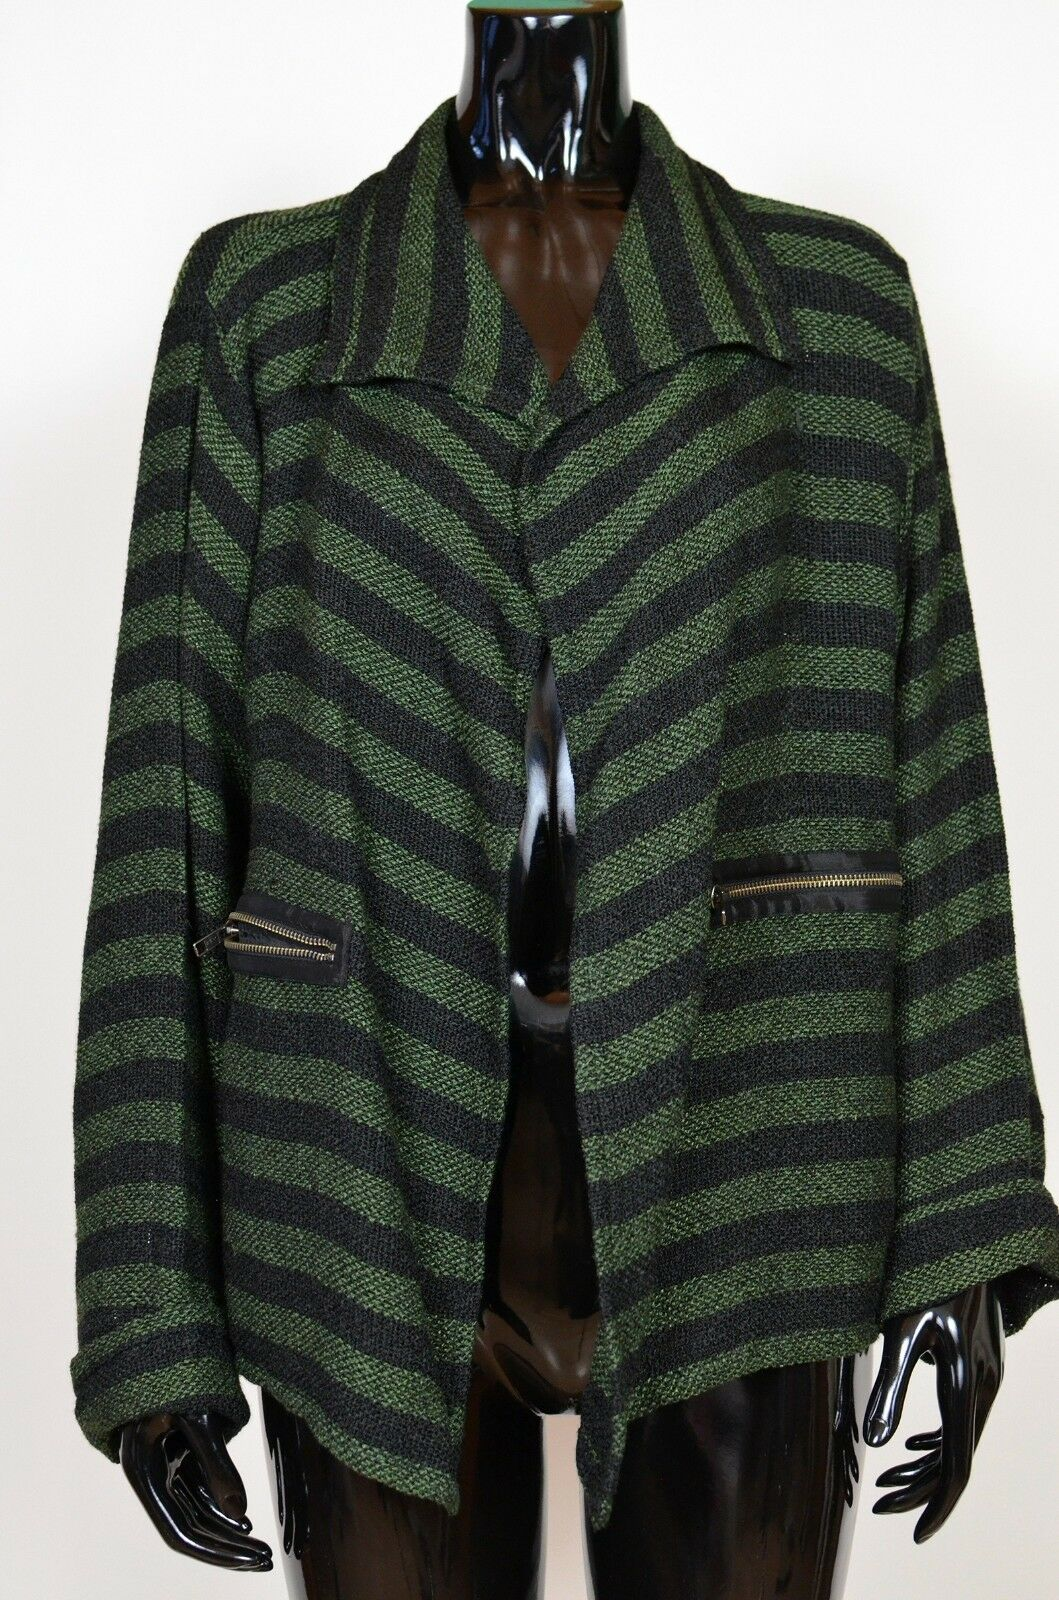 THE MASAI CLOTHING COMPANY Cardigan Striped Knitted Blazer Size XL